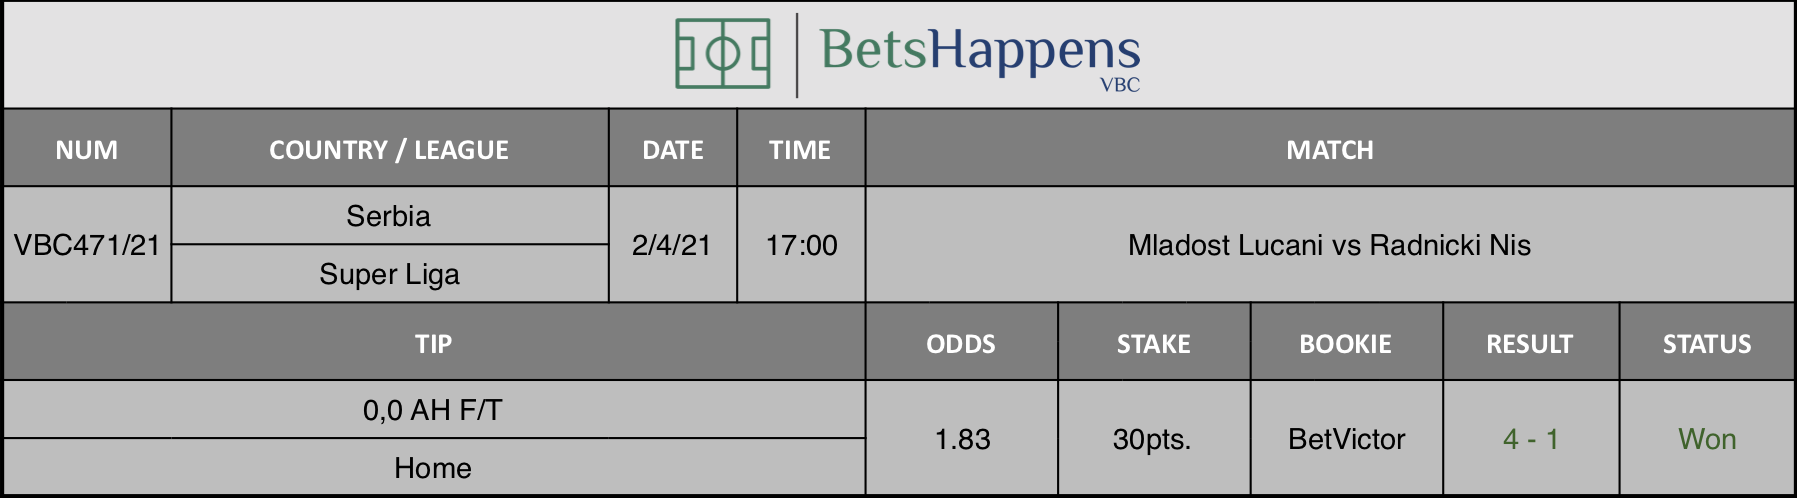 Results of our tip for the Mladost Lucani vs Radnicki Nis match where 0,0 AH F/T  Home is recommended.